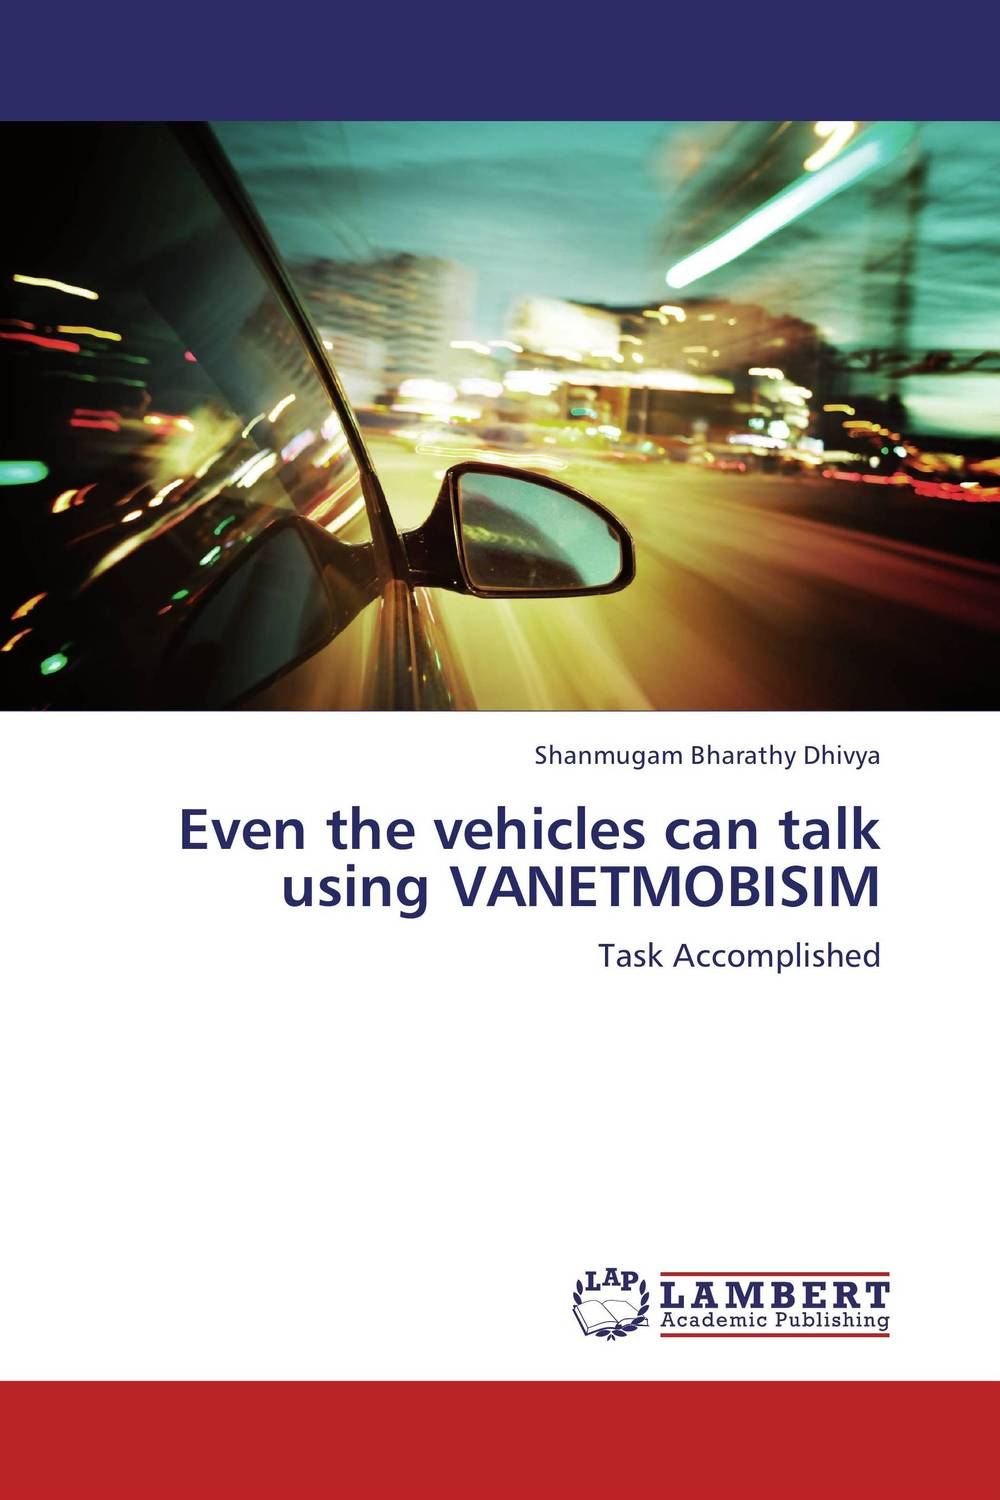 Even the vehicles can talk using VANETMOBISIM characterizing user mobility in wireless networks